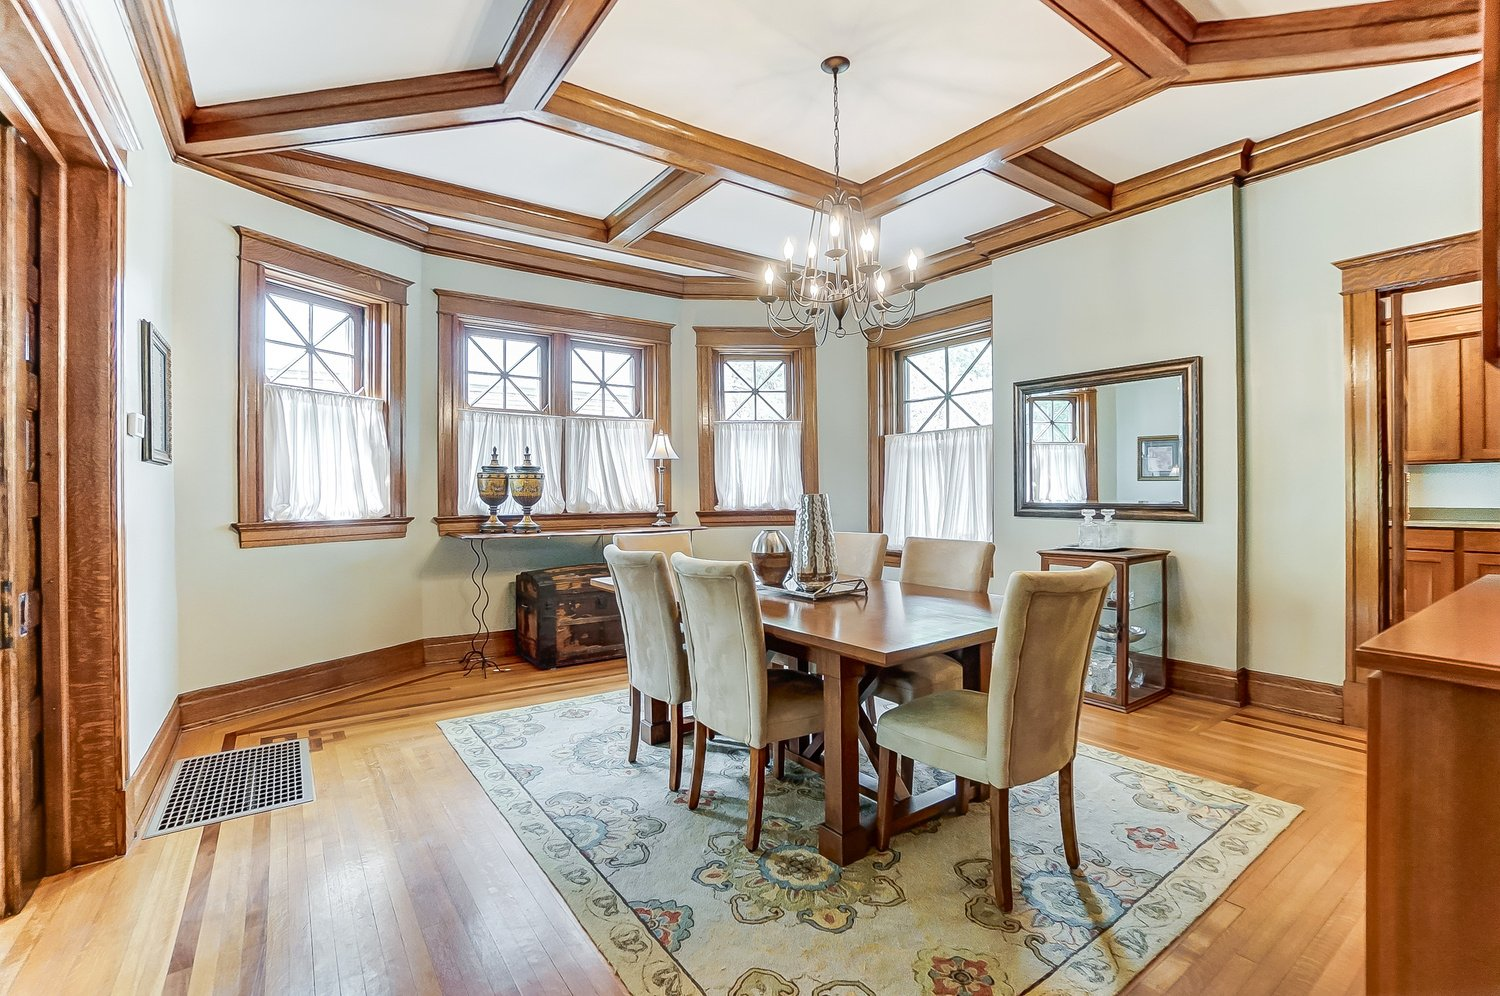 Home for Sale in Hyde Park with Open House